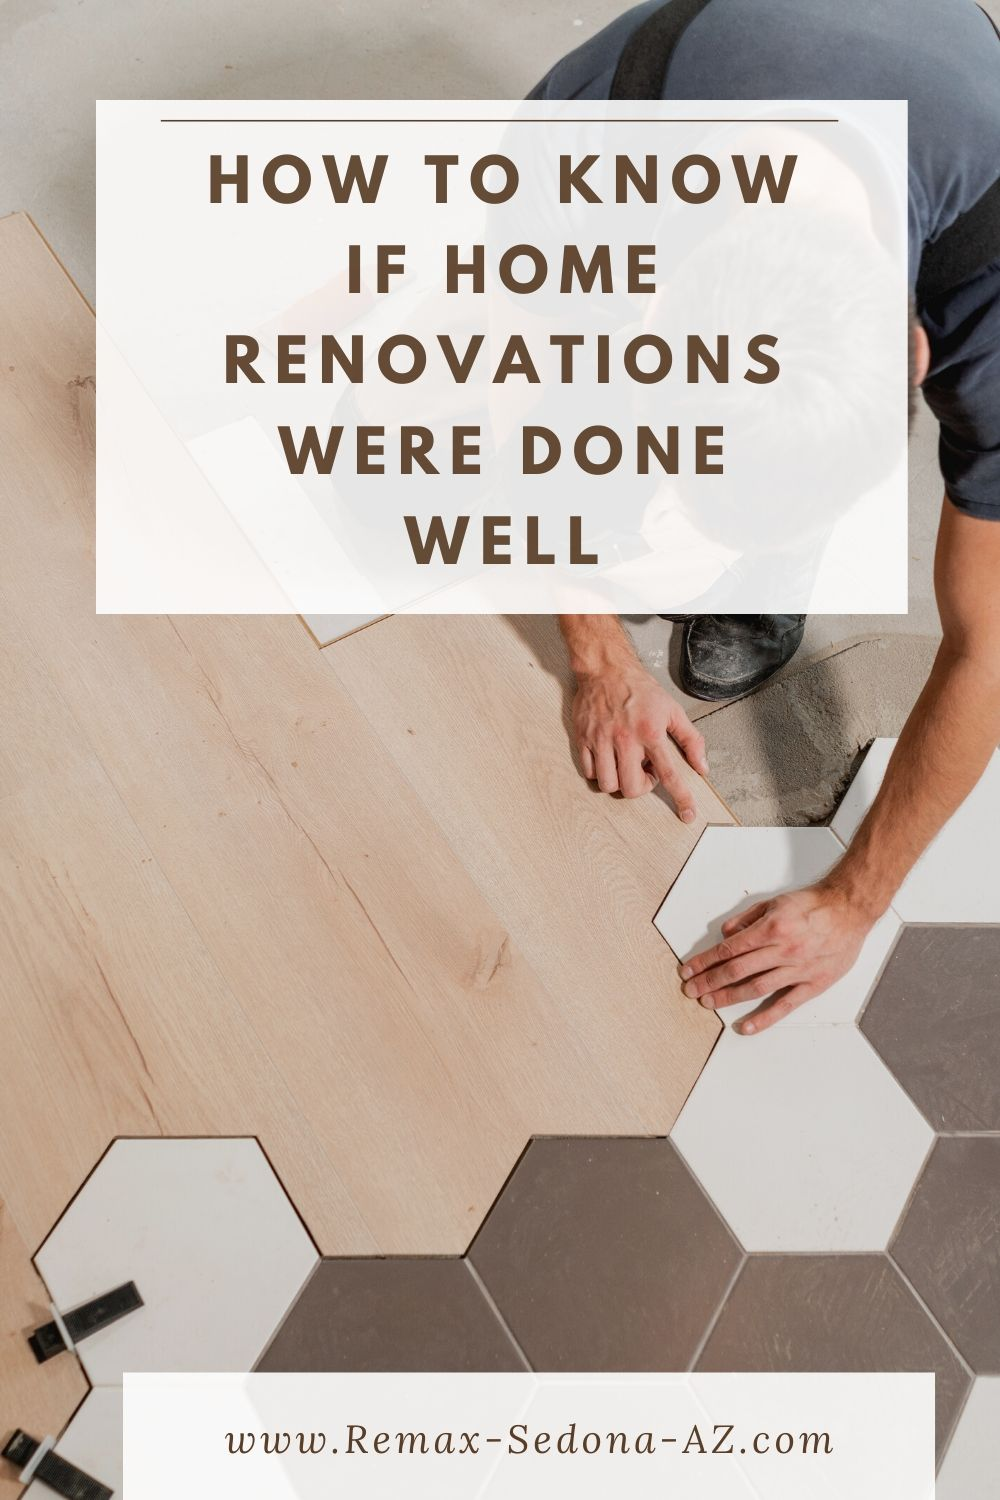 How to Know if Home Renovations Were Done Well